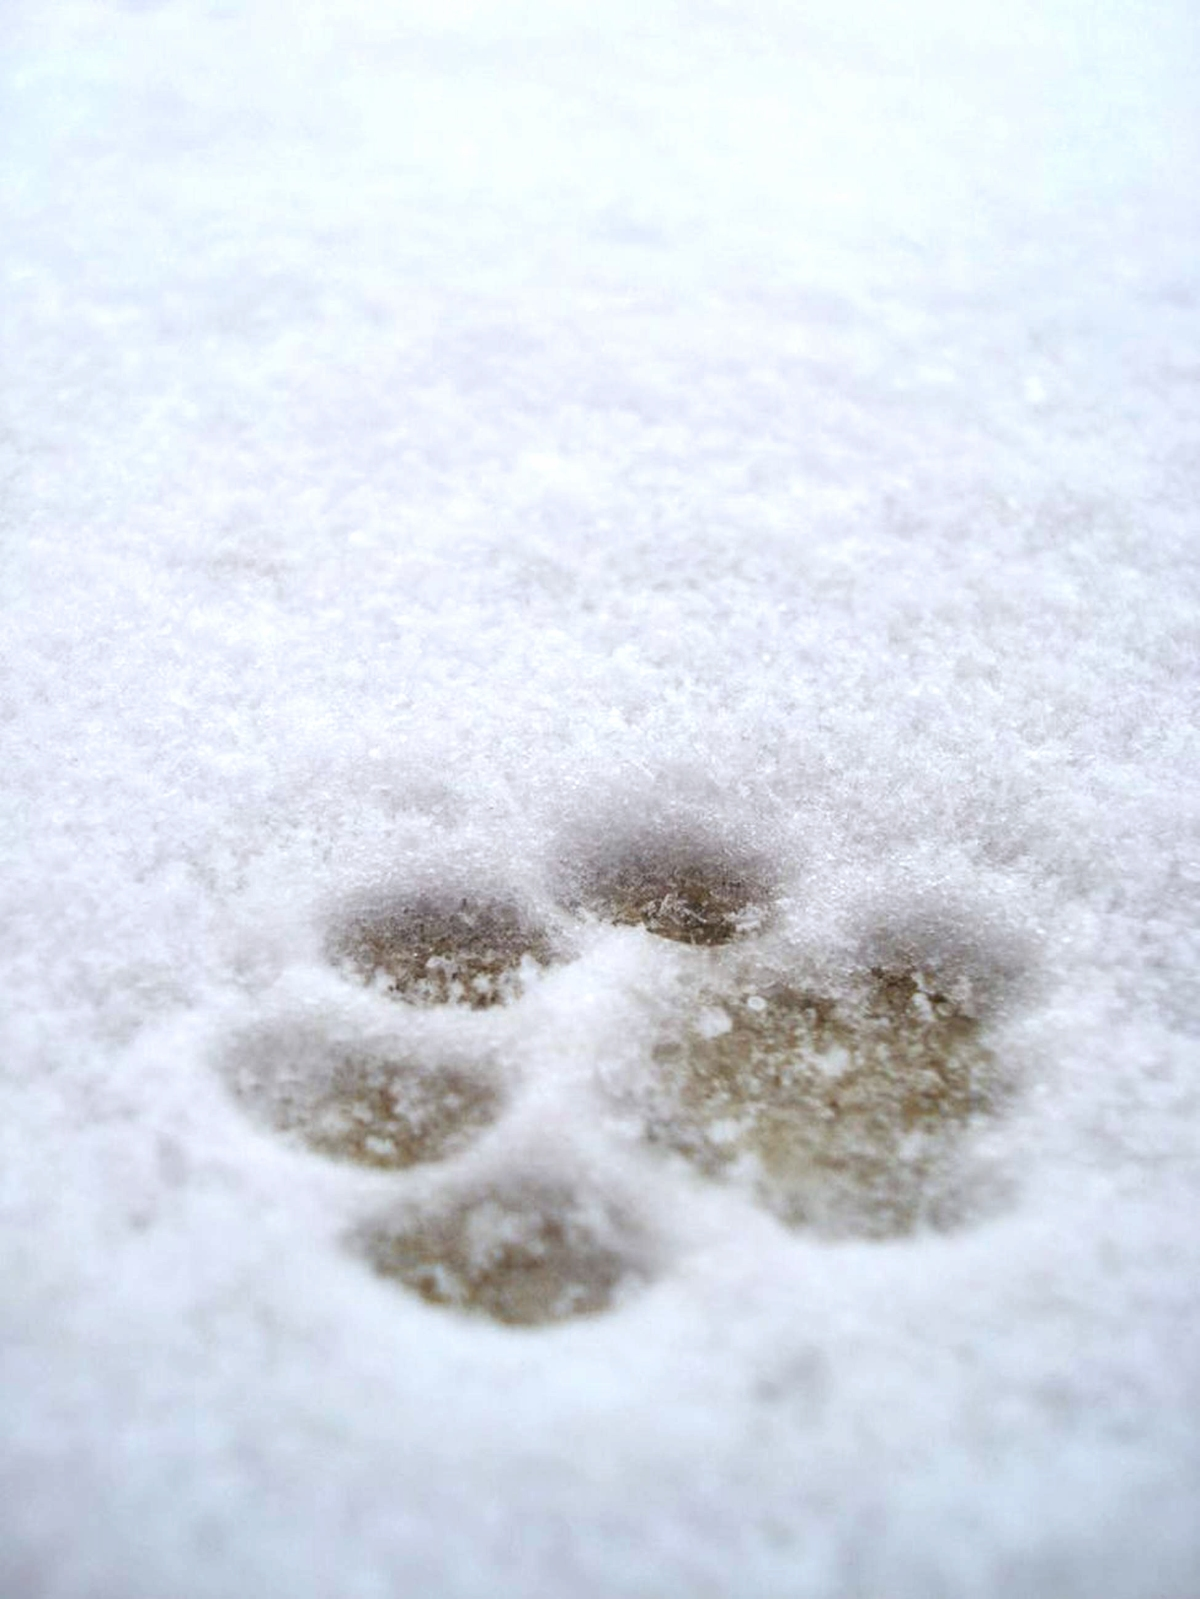 Dog paws in snow photo / Salt, grit, antifreeze poisoning and dangers in dogs in winter / signs of poisoning in dogs / Perfect cocker spaniel book and blog / cocker spaniel tips, advice, grooming, diet (C)